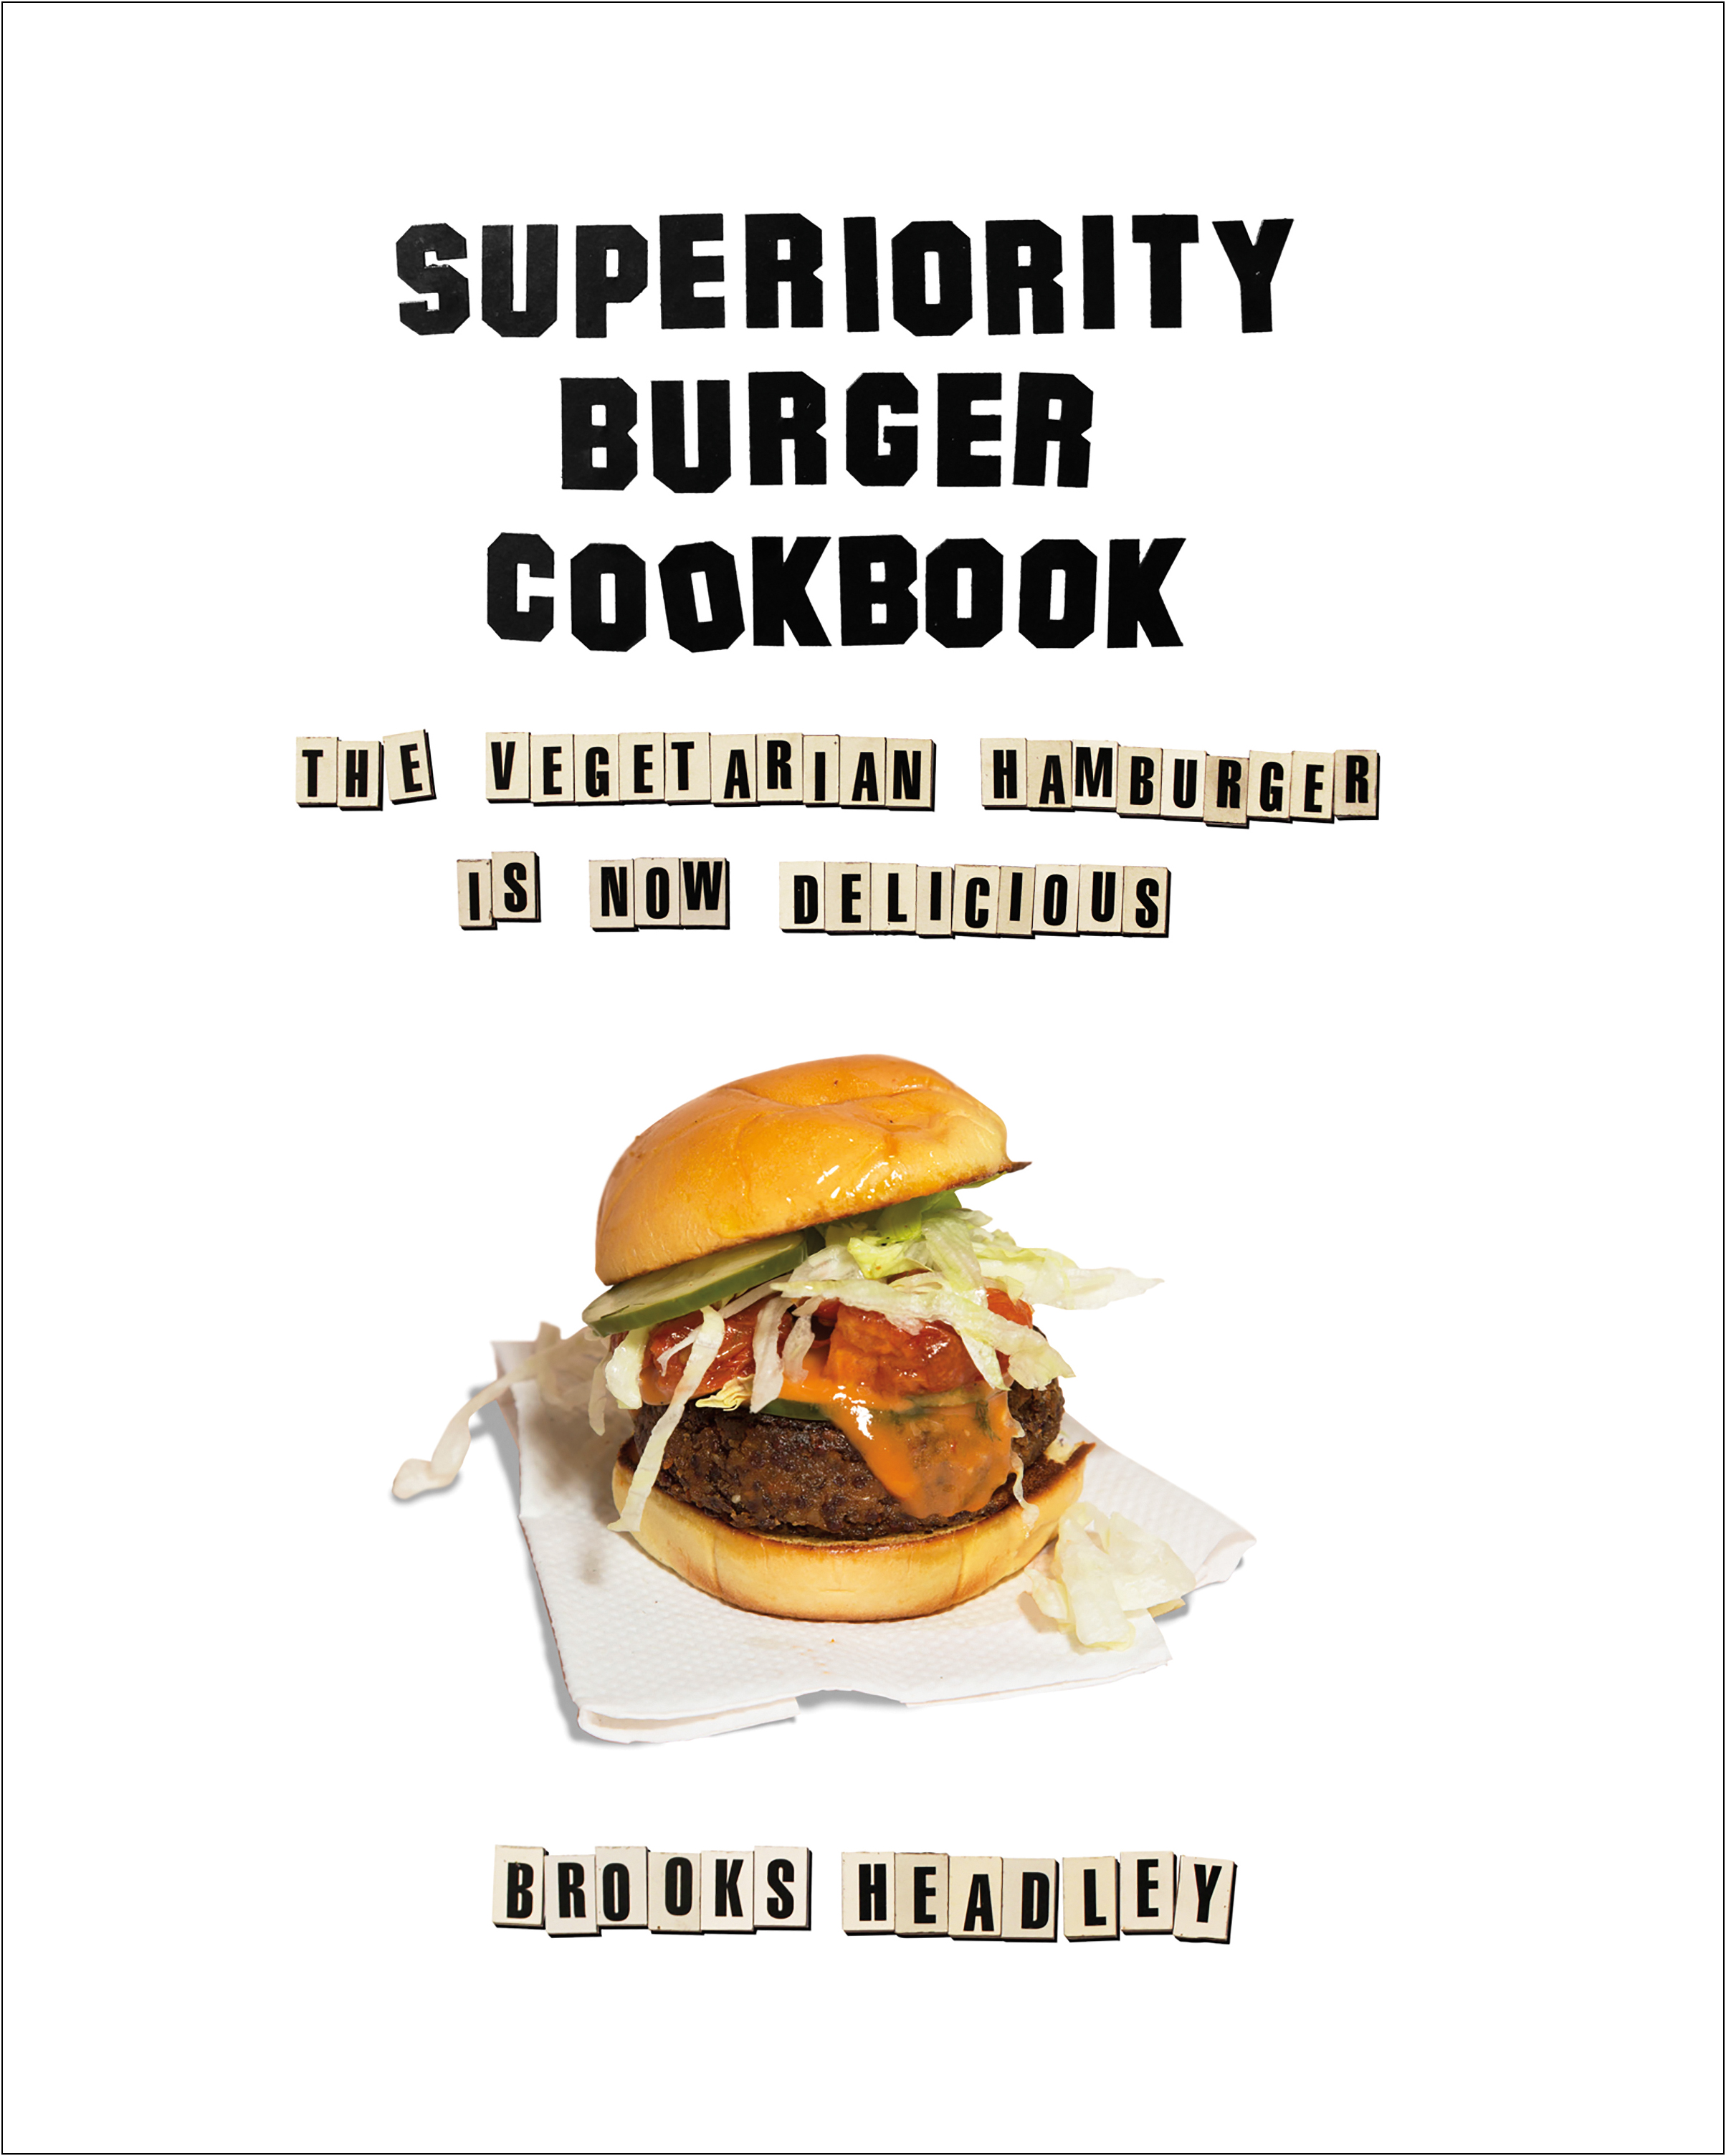 BEHOLD THE COVER FOR THE SUPERIORITY BURGER COOKBOOK!